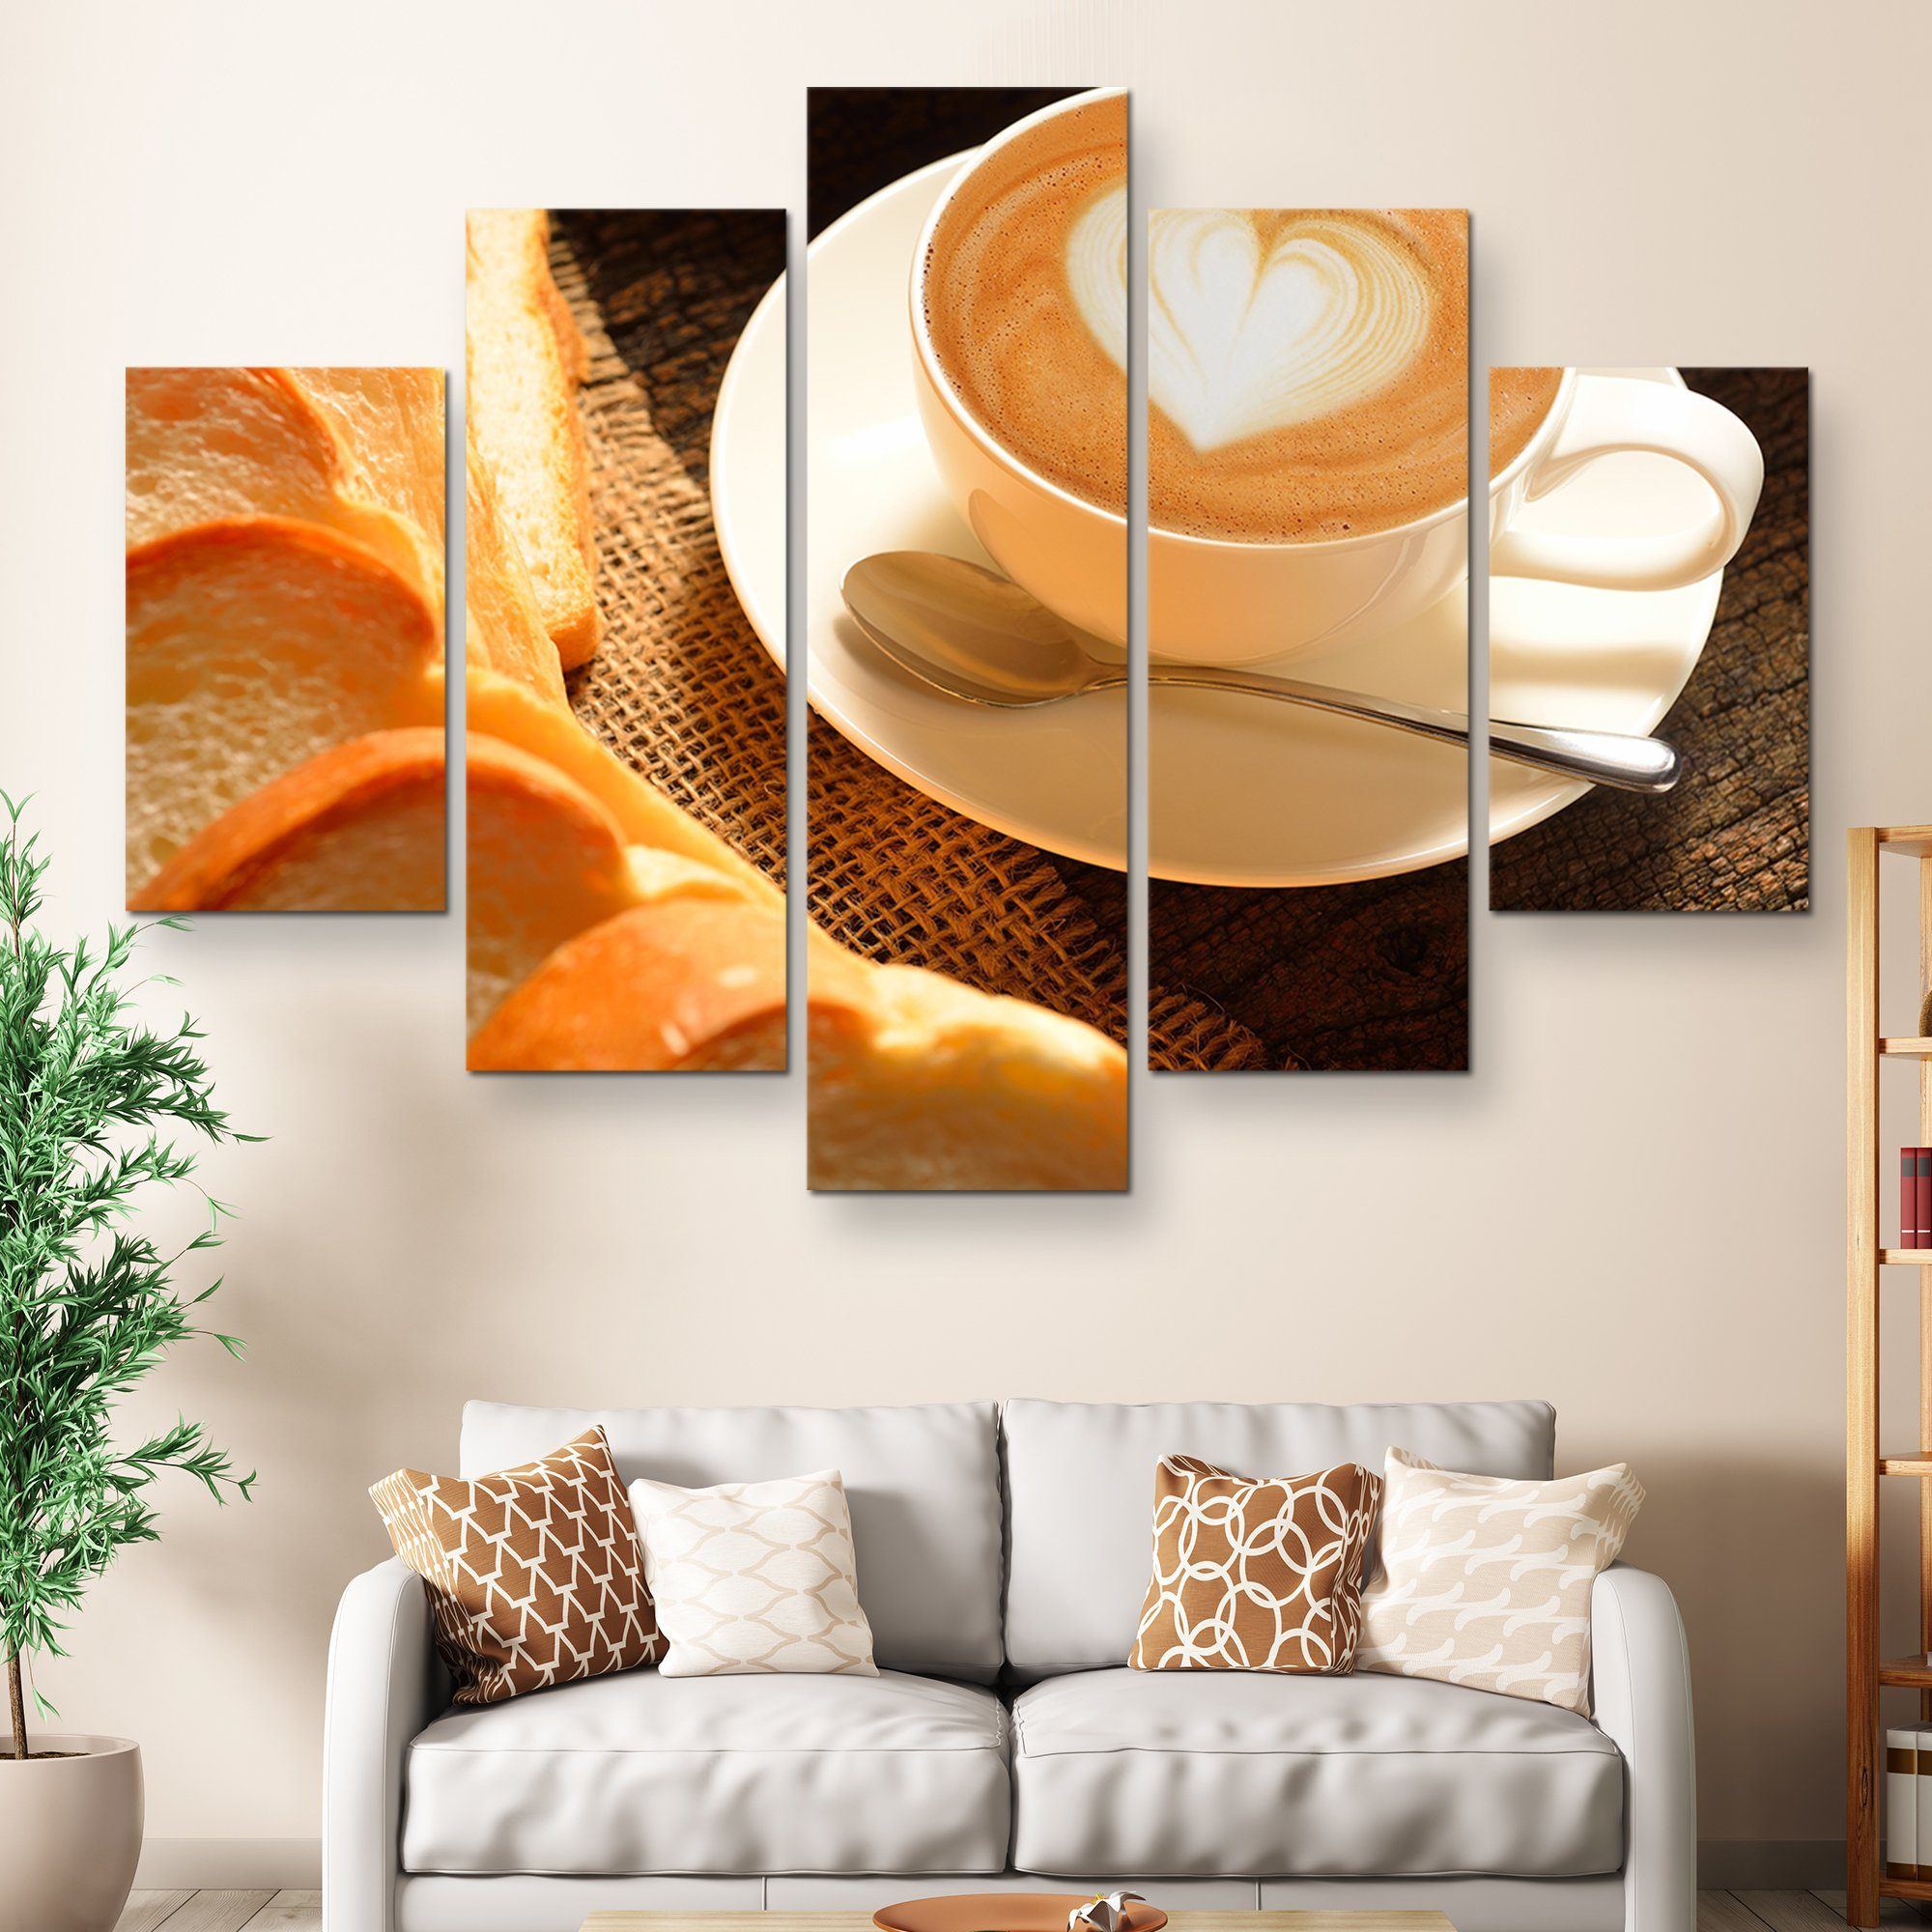 5 piece Some Bread and Latte wall art